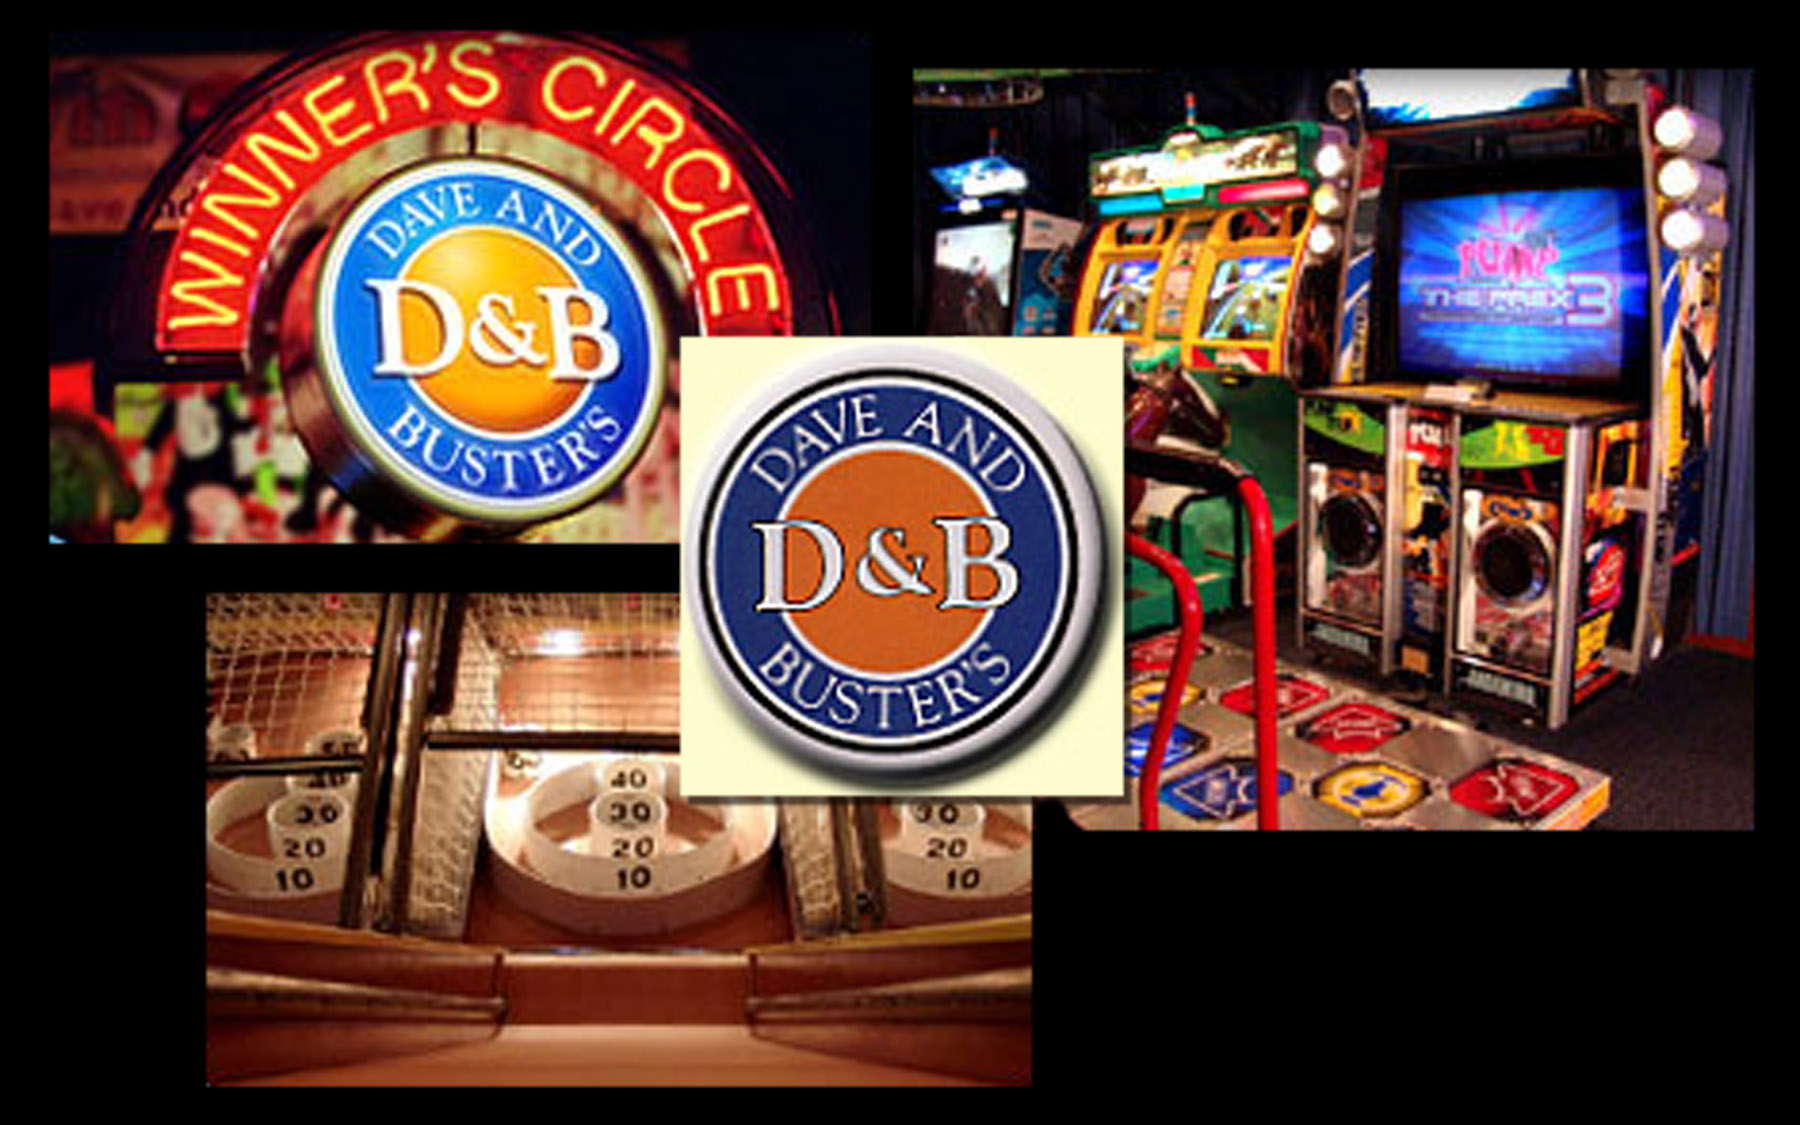 Dave & Buster's in Little Rock, AR